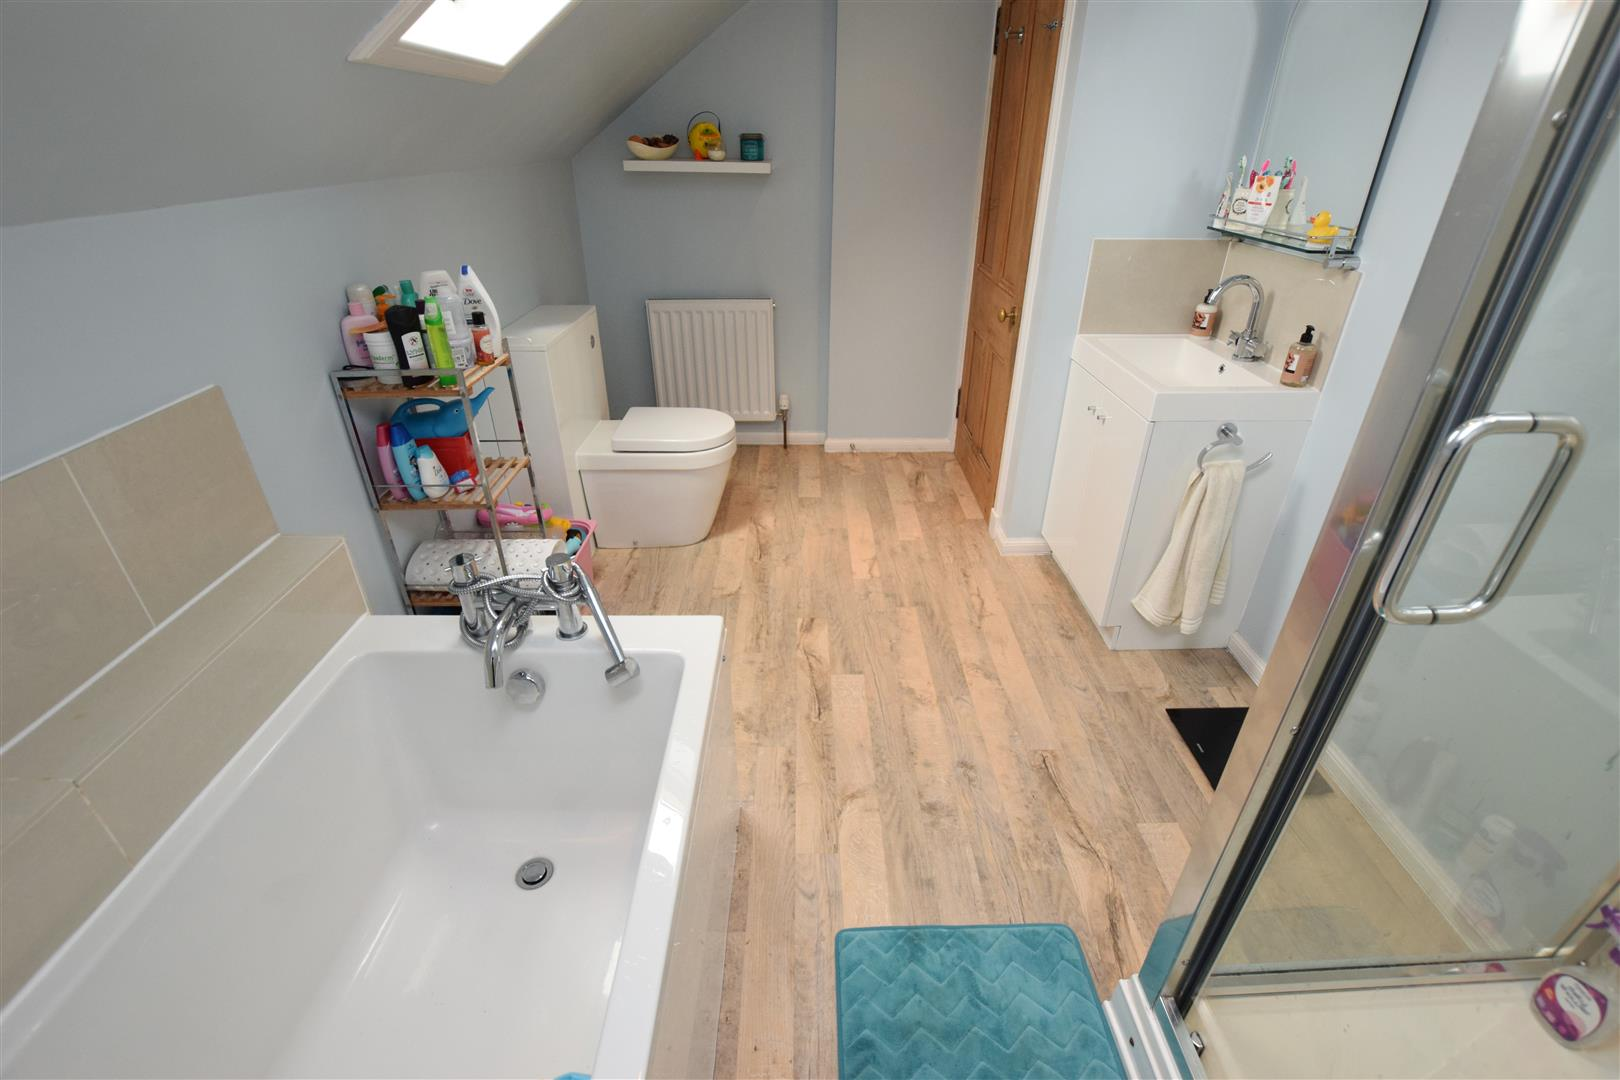 55A, Priory Place, Perth, Perthshire, PH2 0EA, UK